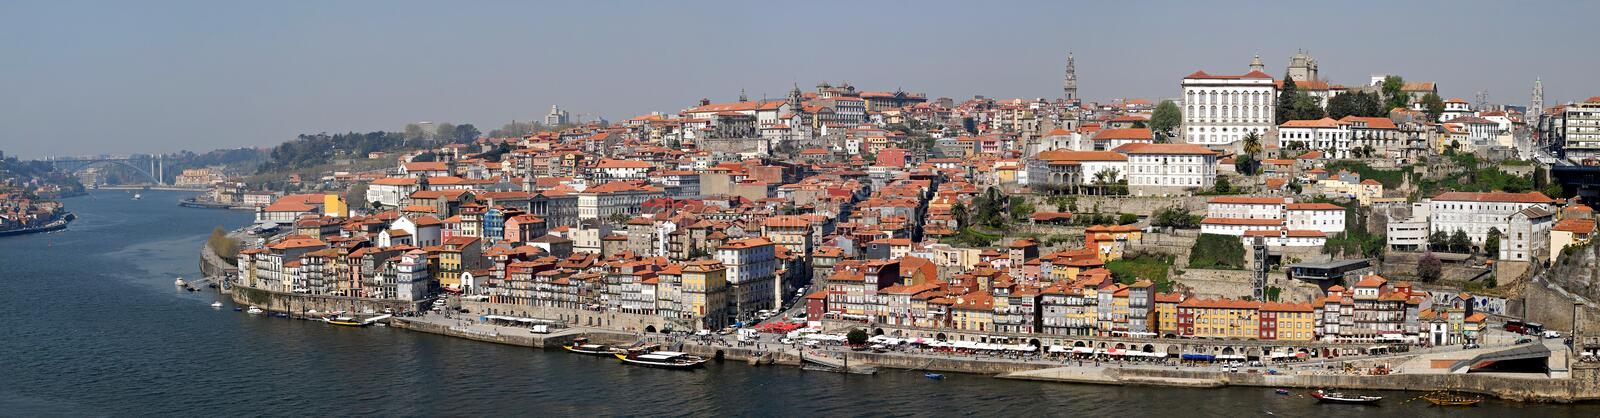 Panorama of Porto with river Duoro, Portugal. royalty free stock photography